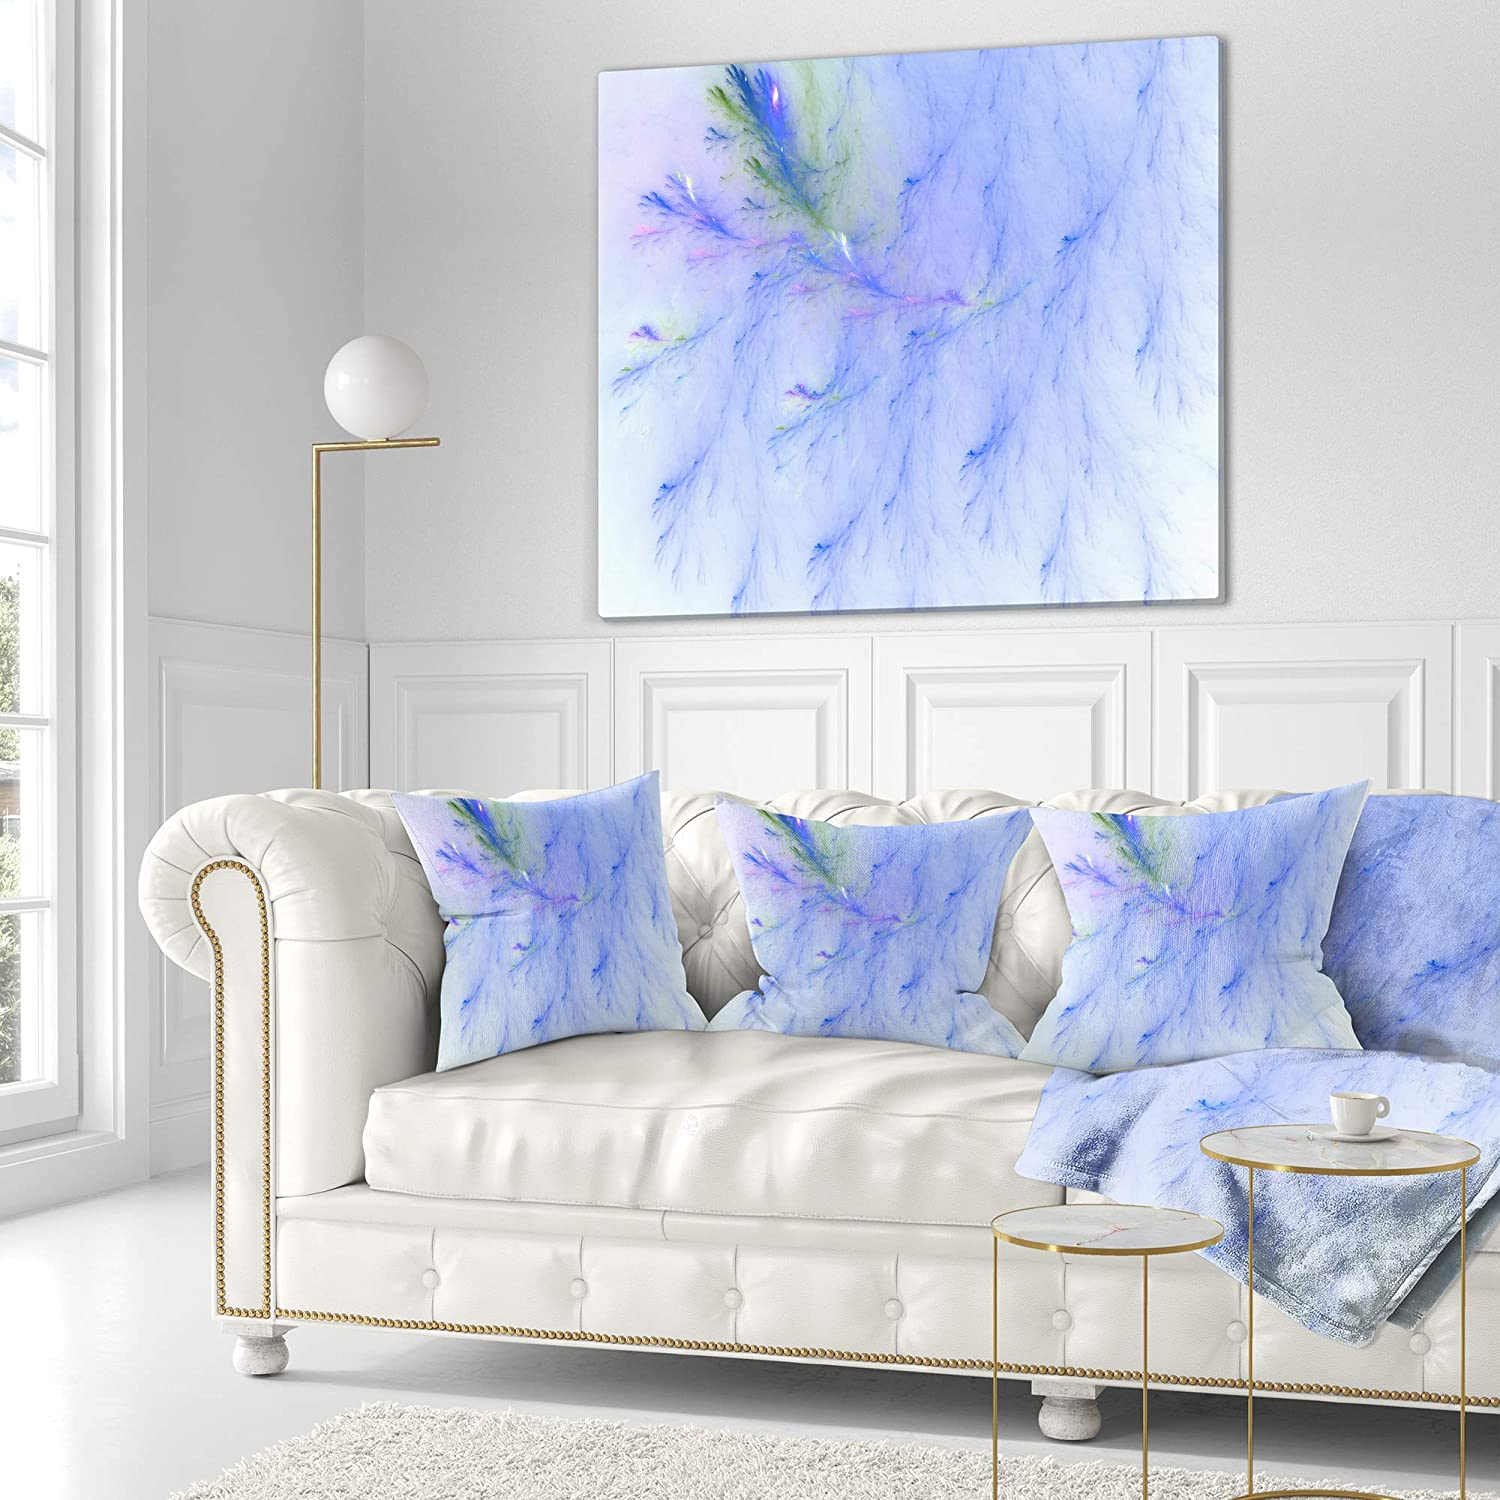 x 26 in in Designart CU16041-26-26 Light Blue Veins of Marble Abstract Cushion Cover for Living Room Sofa Throw Pillow 26 in